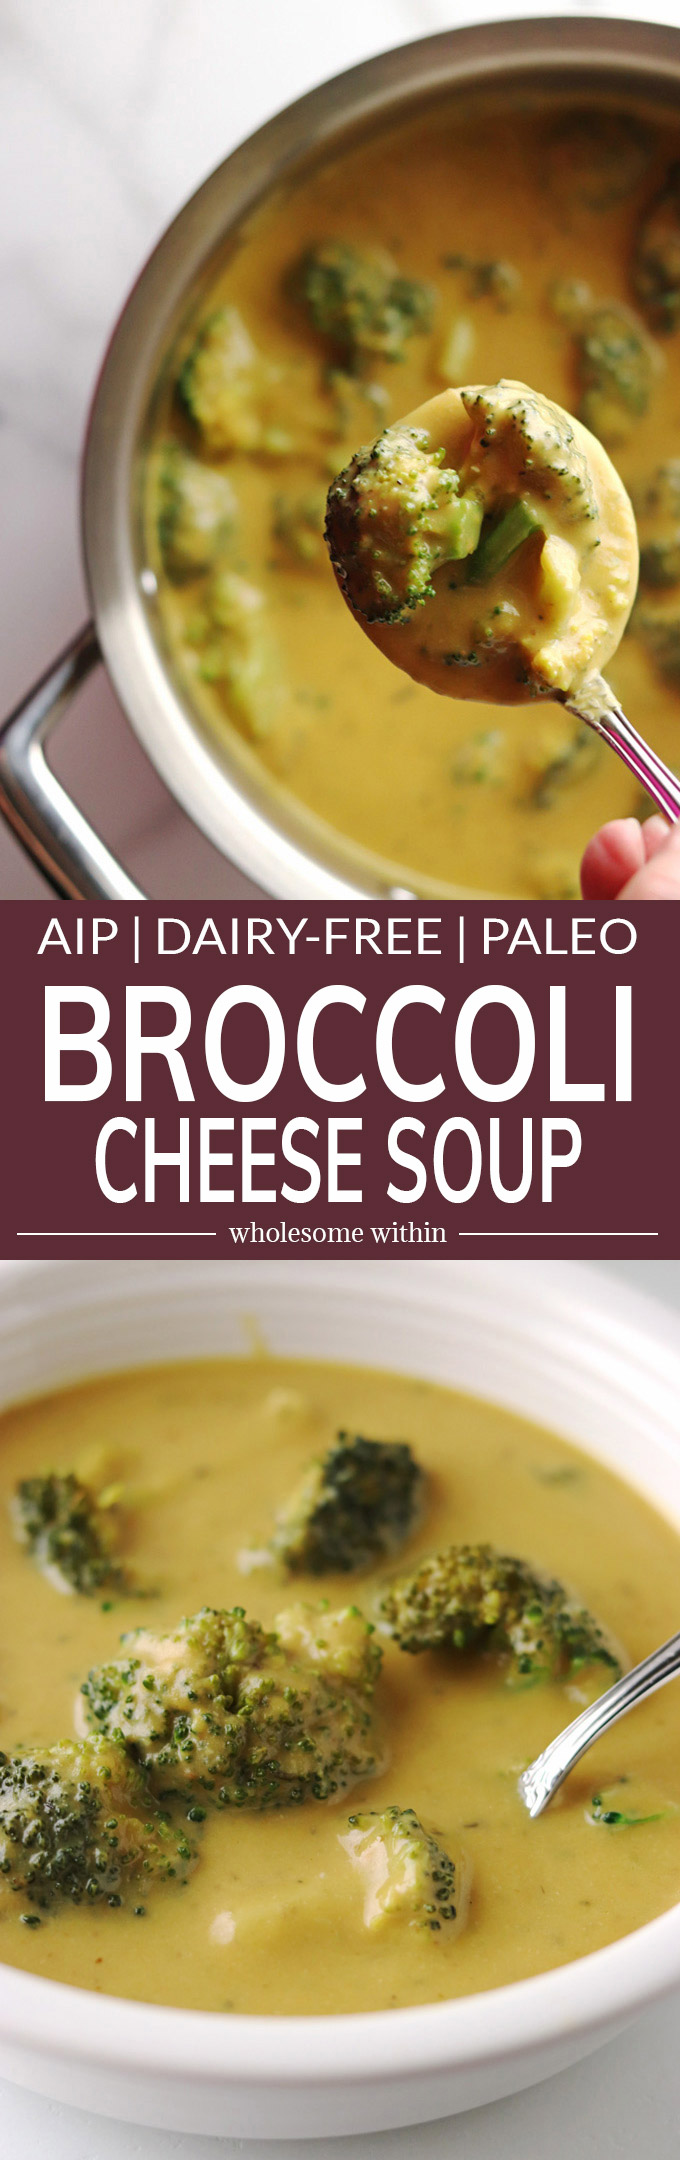 This Broccoli Cheese Soup is so delicious and creamy, you won't even miss the cheese! You will find it hard to believe that it is AIP, Paleo and dairy-free.